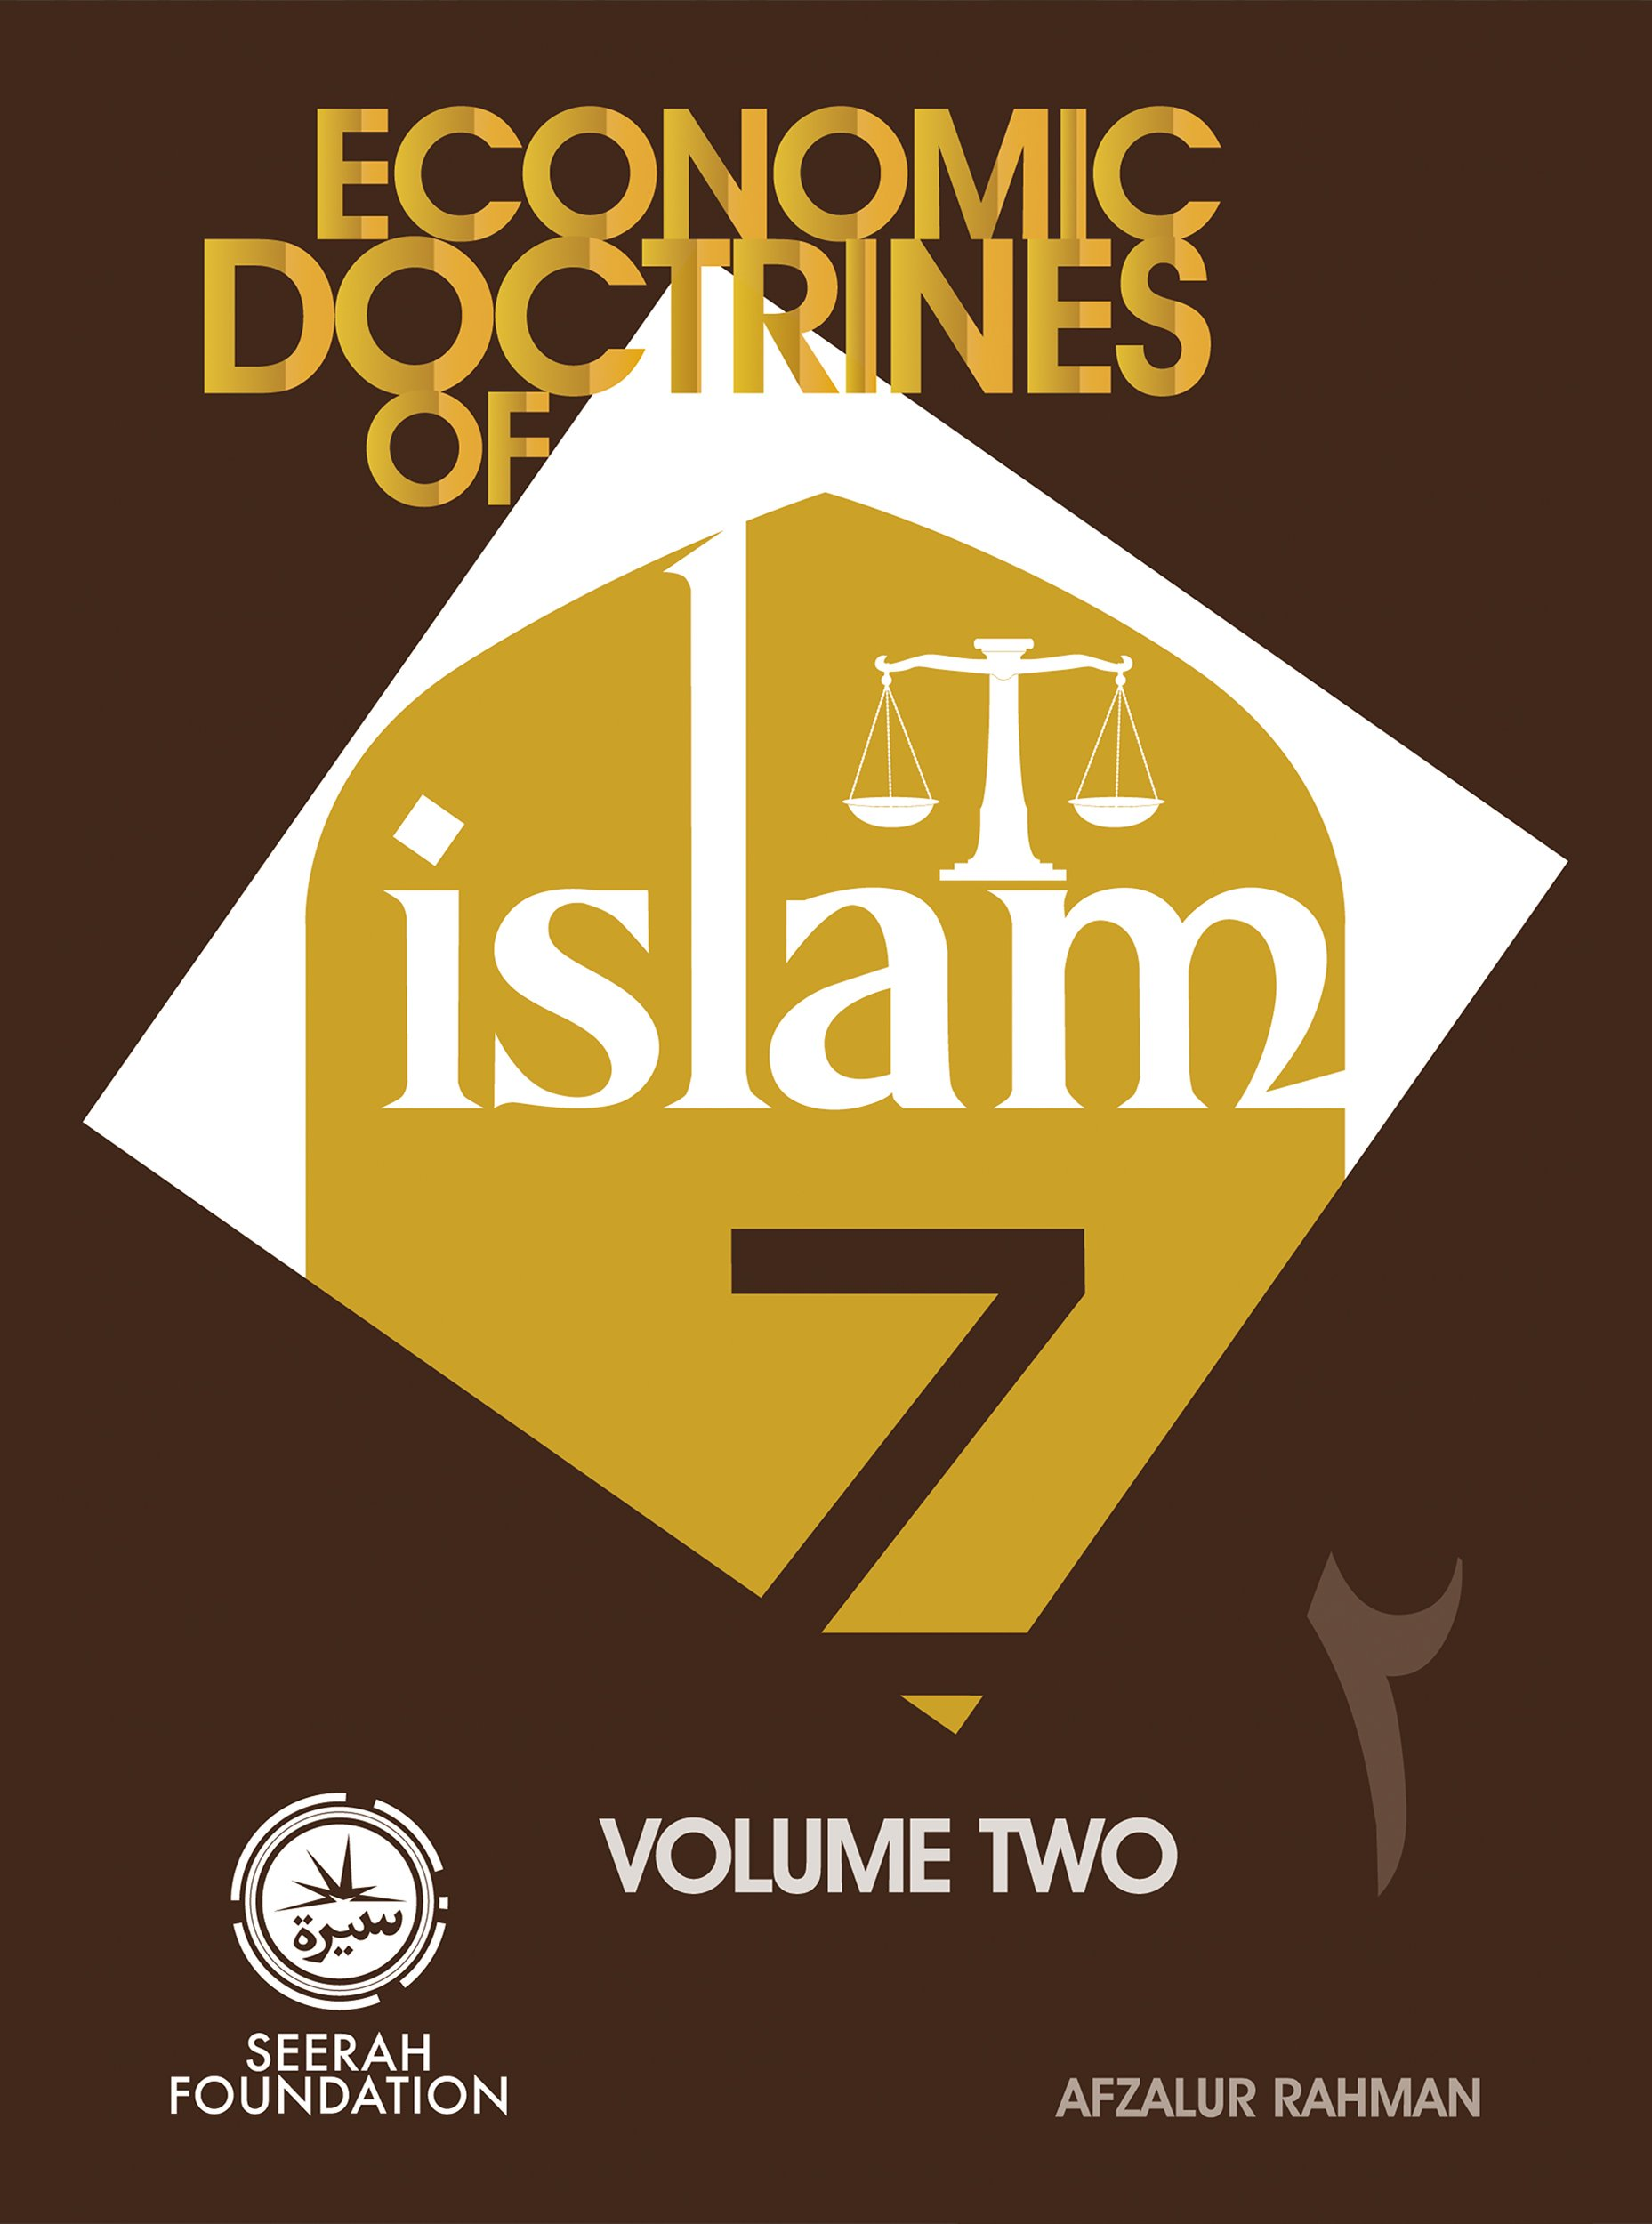 Economic Doctrines of Islam - Volume 2